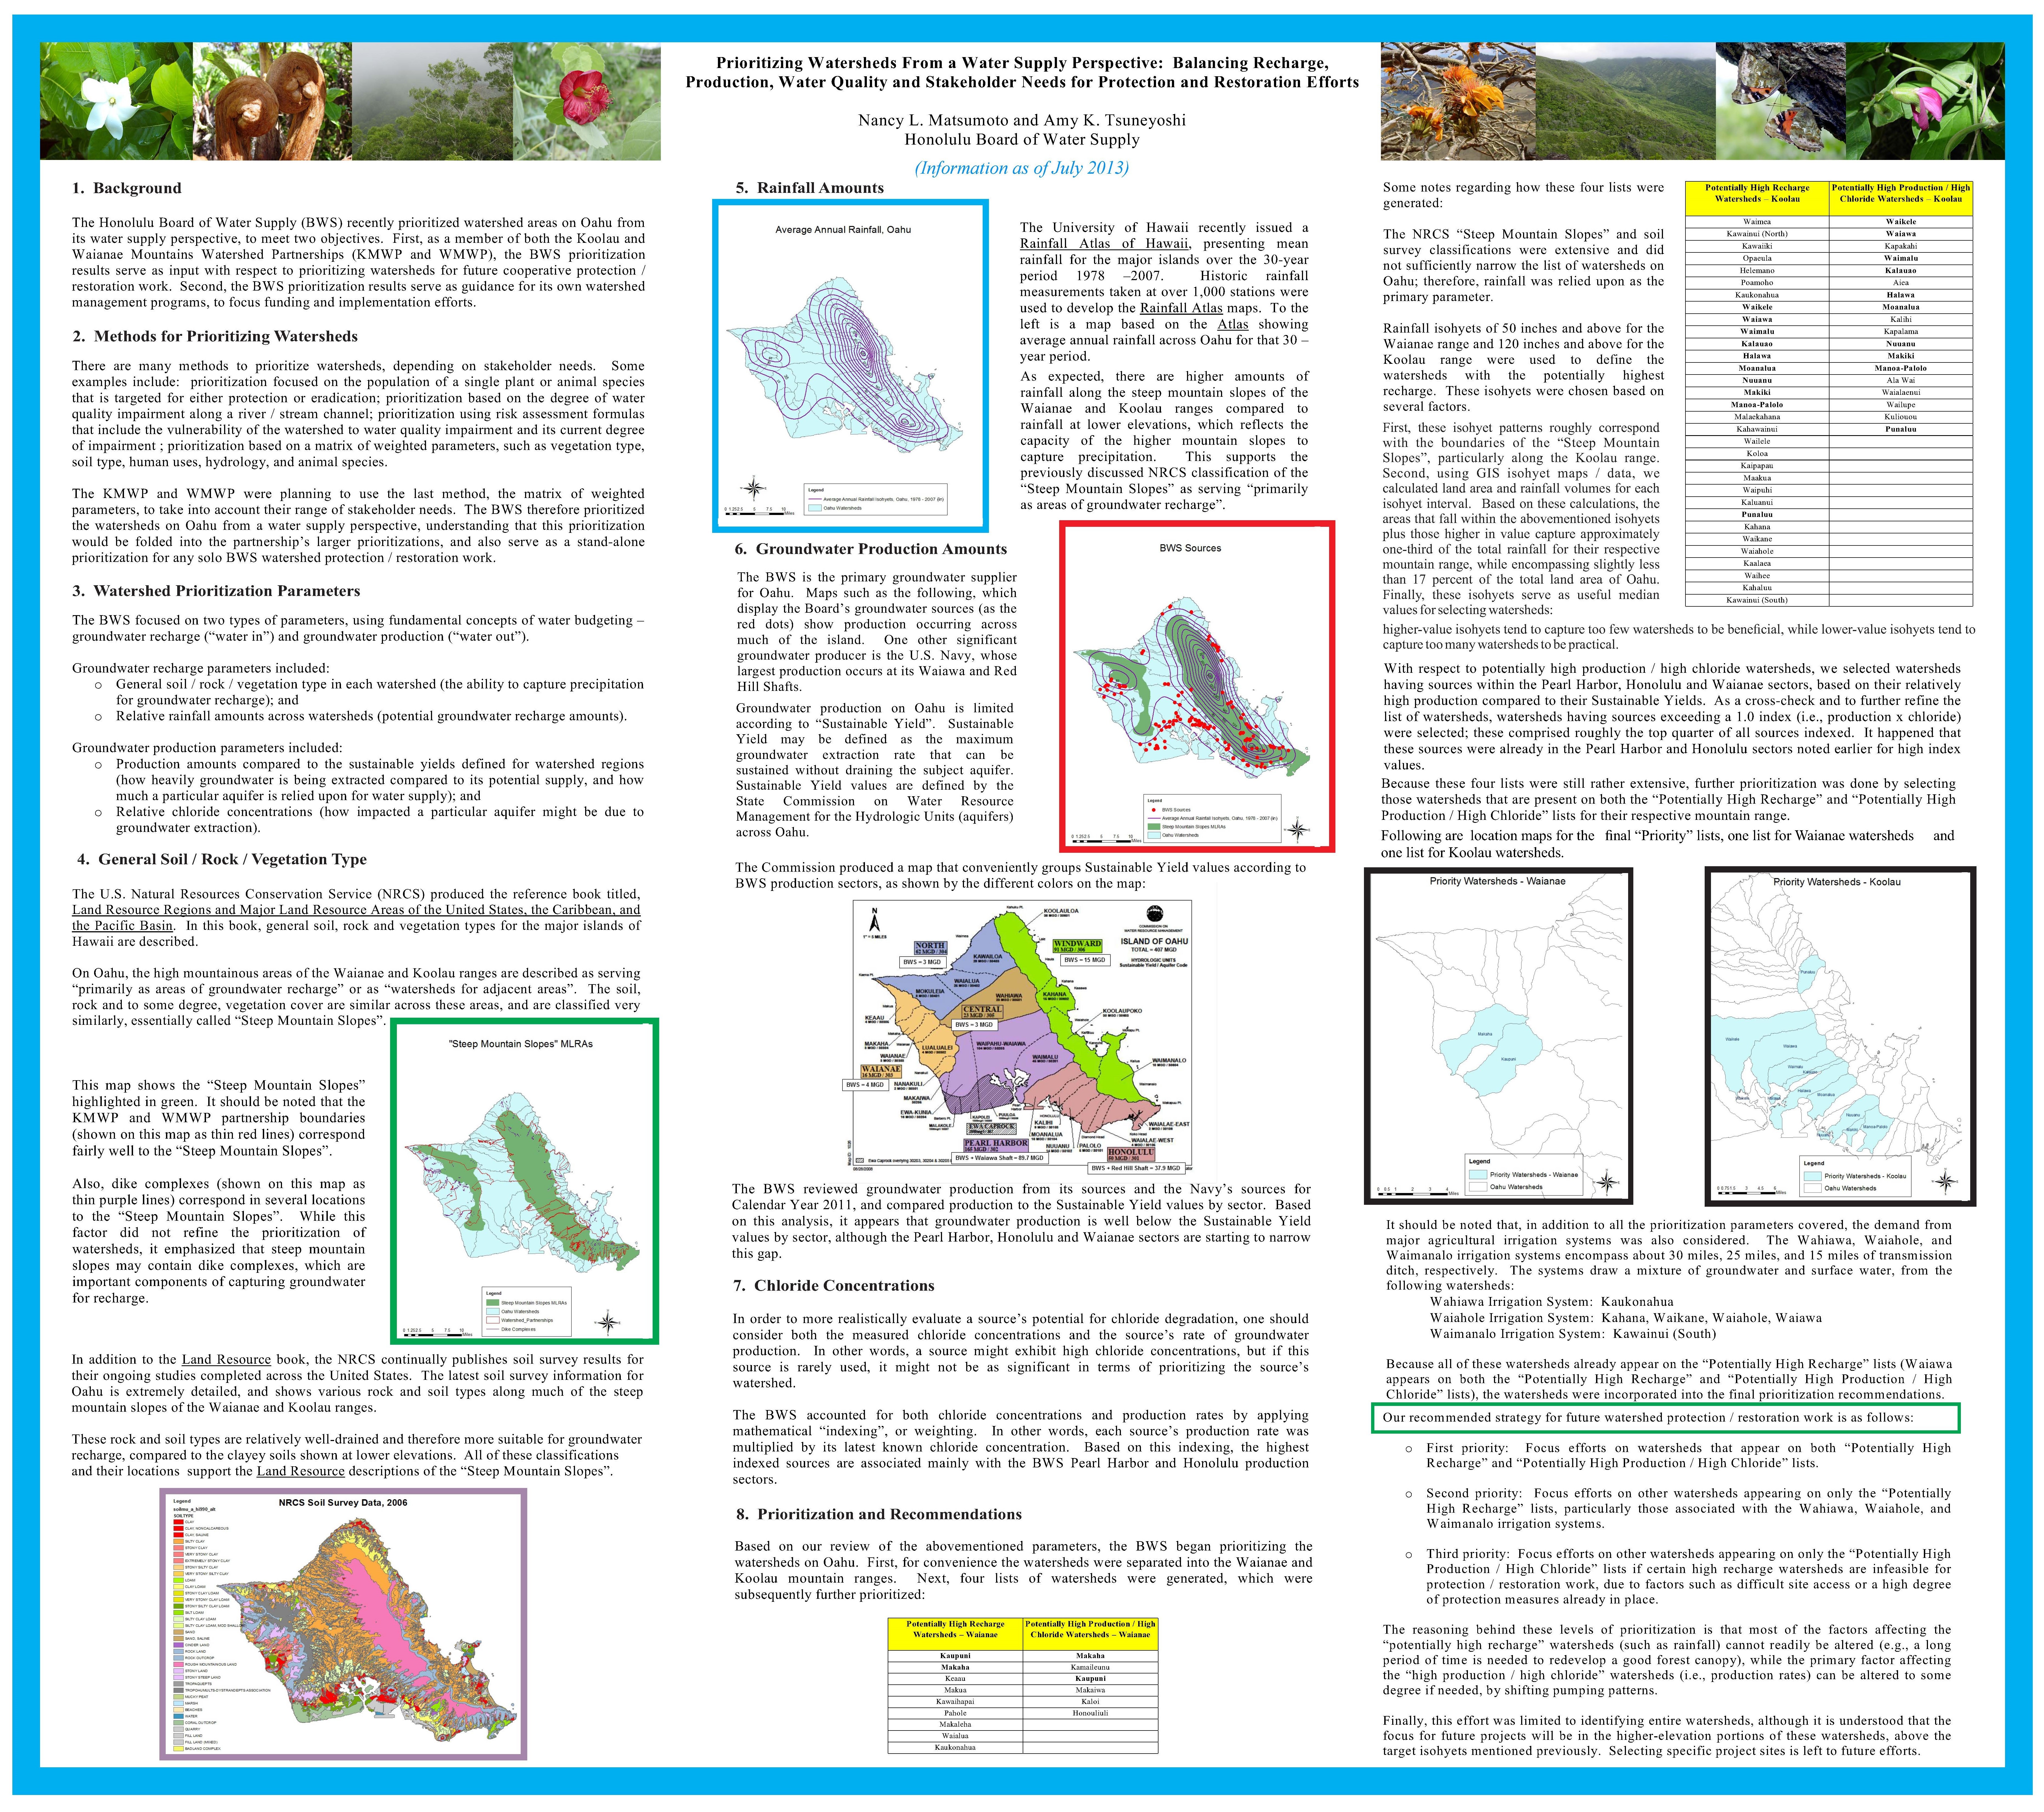 watershed prioritization poster 2013